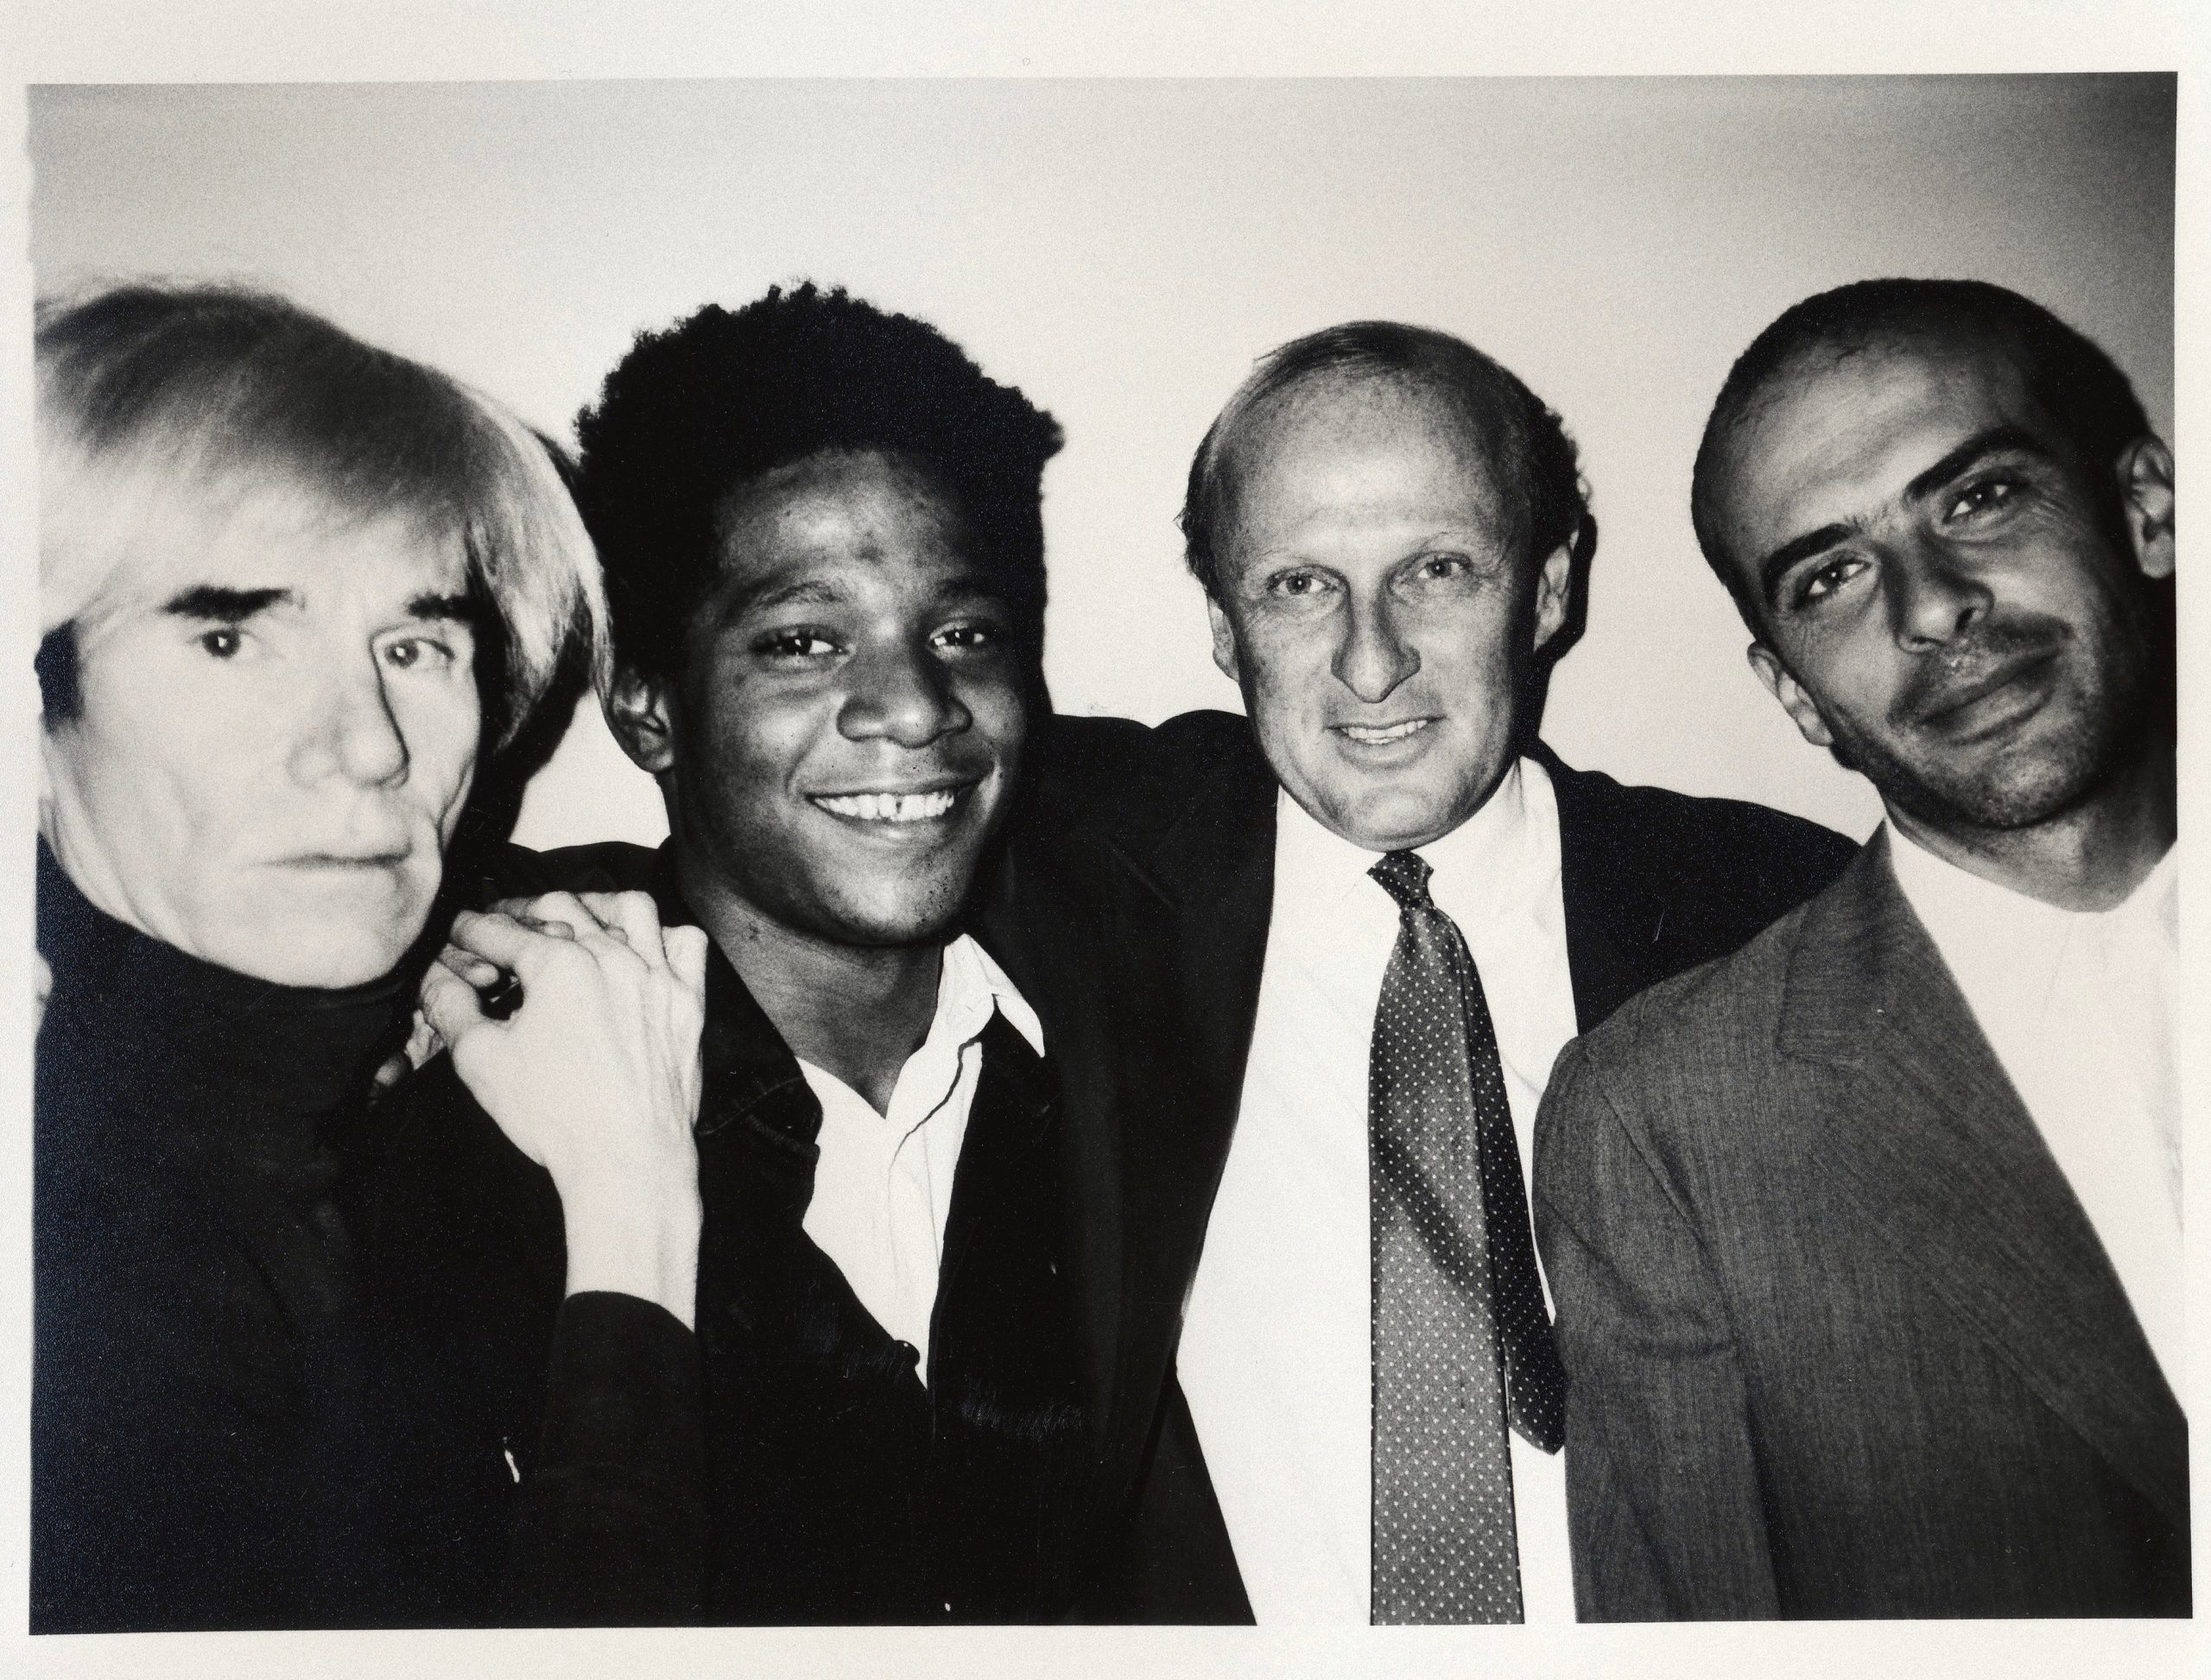 Warhol and Basquiat (L) teamed up with artist Francesco Clemente (R) through Bruno Bischofberger, the guy in the tie. (Photo, 1984, Galerie Bruno Bischofberger, shared via CC BY-SA 4.0)